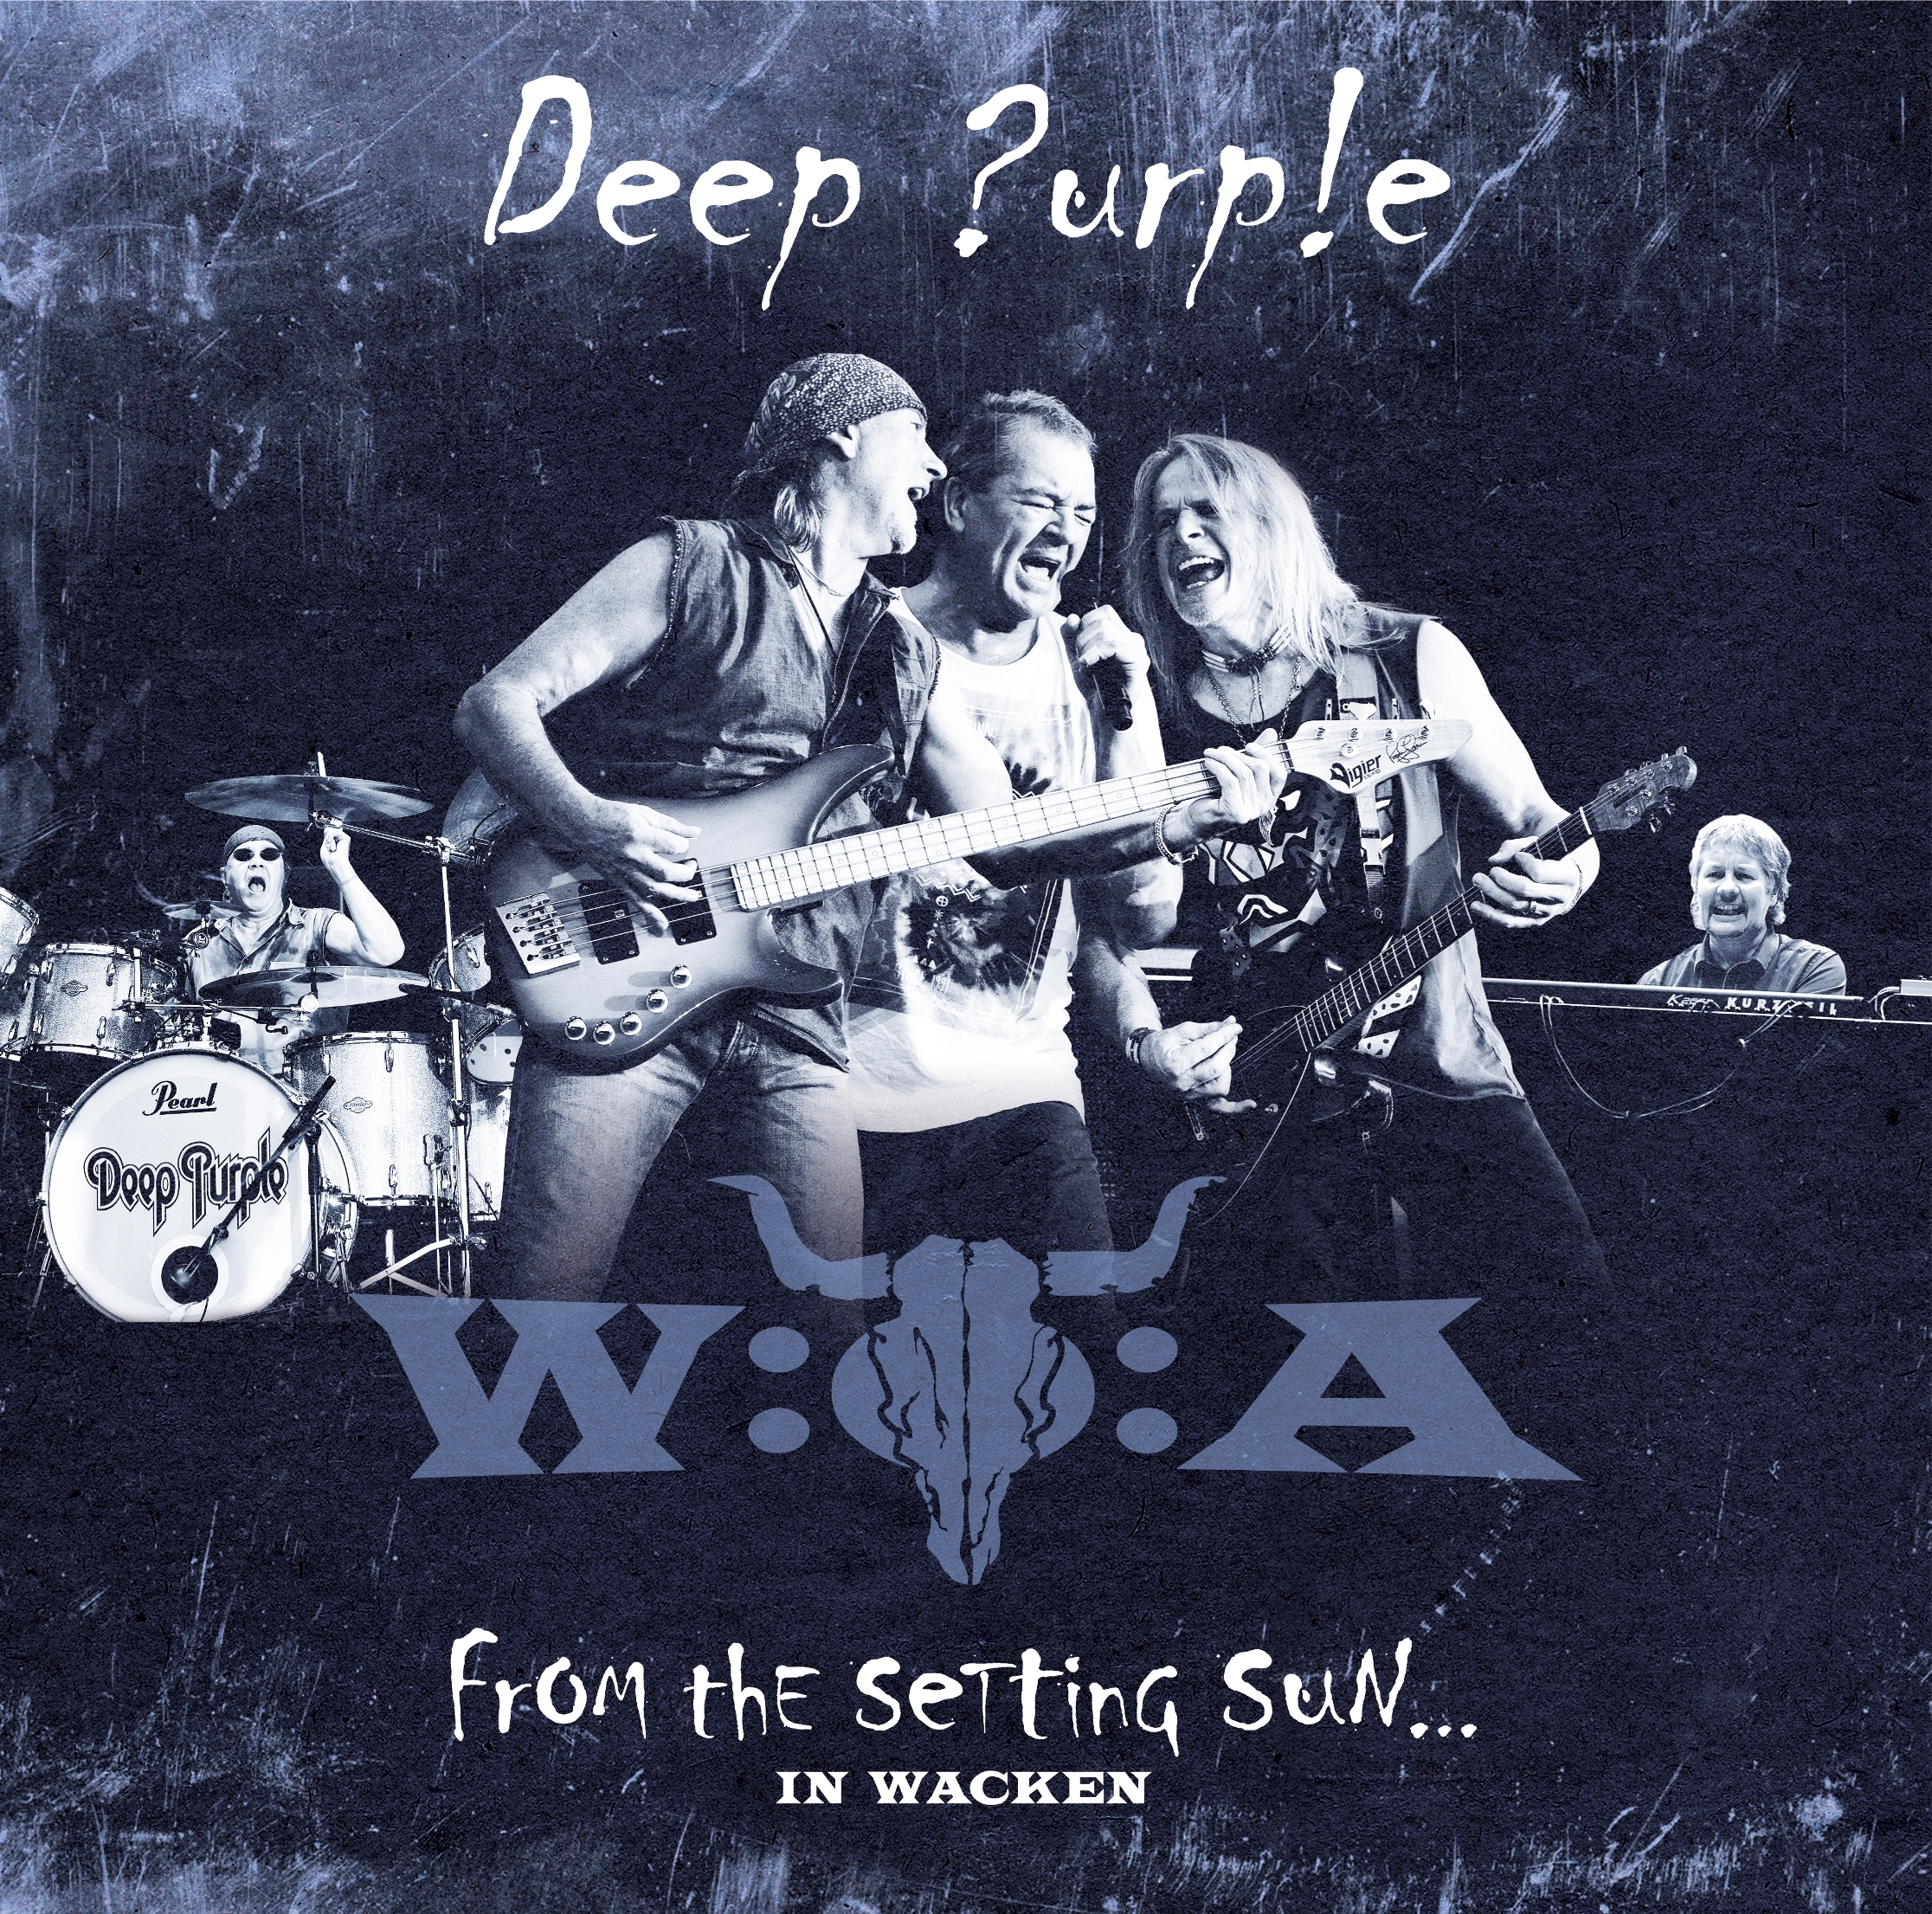 Deep Purple: From the Setting Sun... - In Wacken